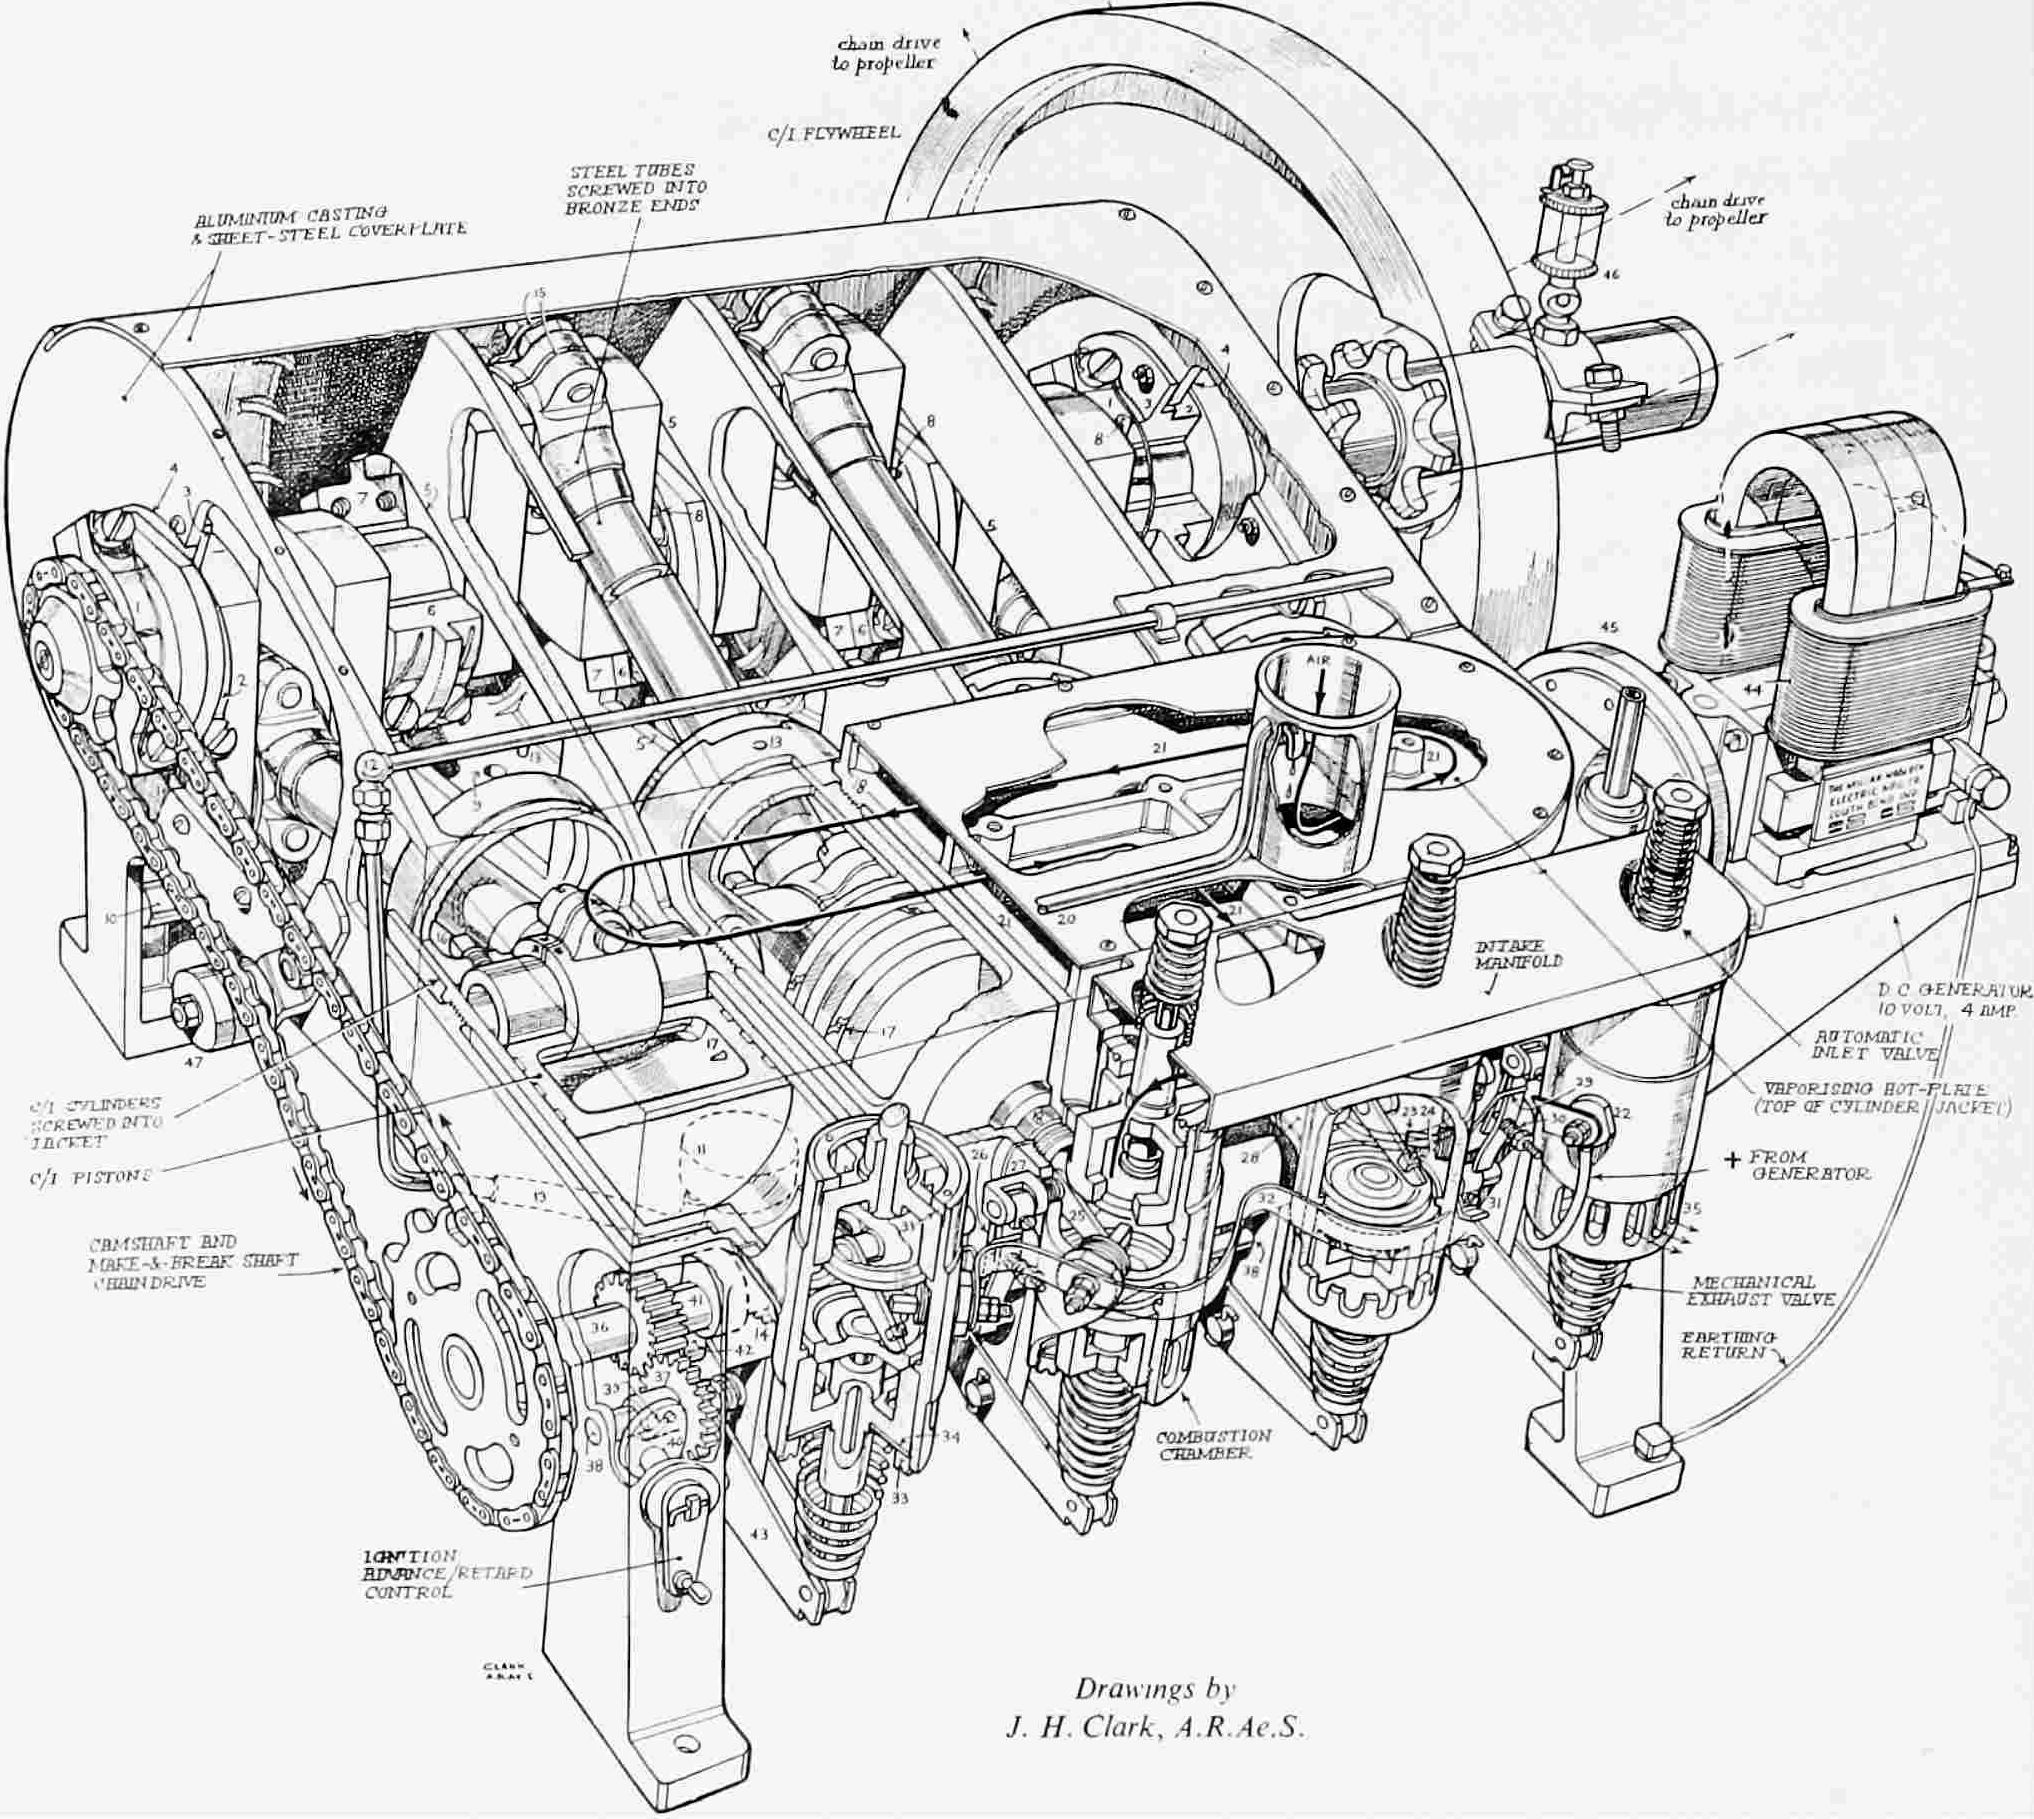 radial aircraft engine diagram cutaway drawings my wiring diagram rh detoxicrecenze com Radial Engine Crankshaft Radial Engine Crankshaft